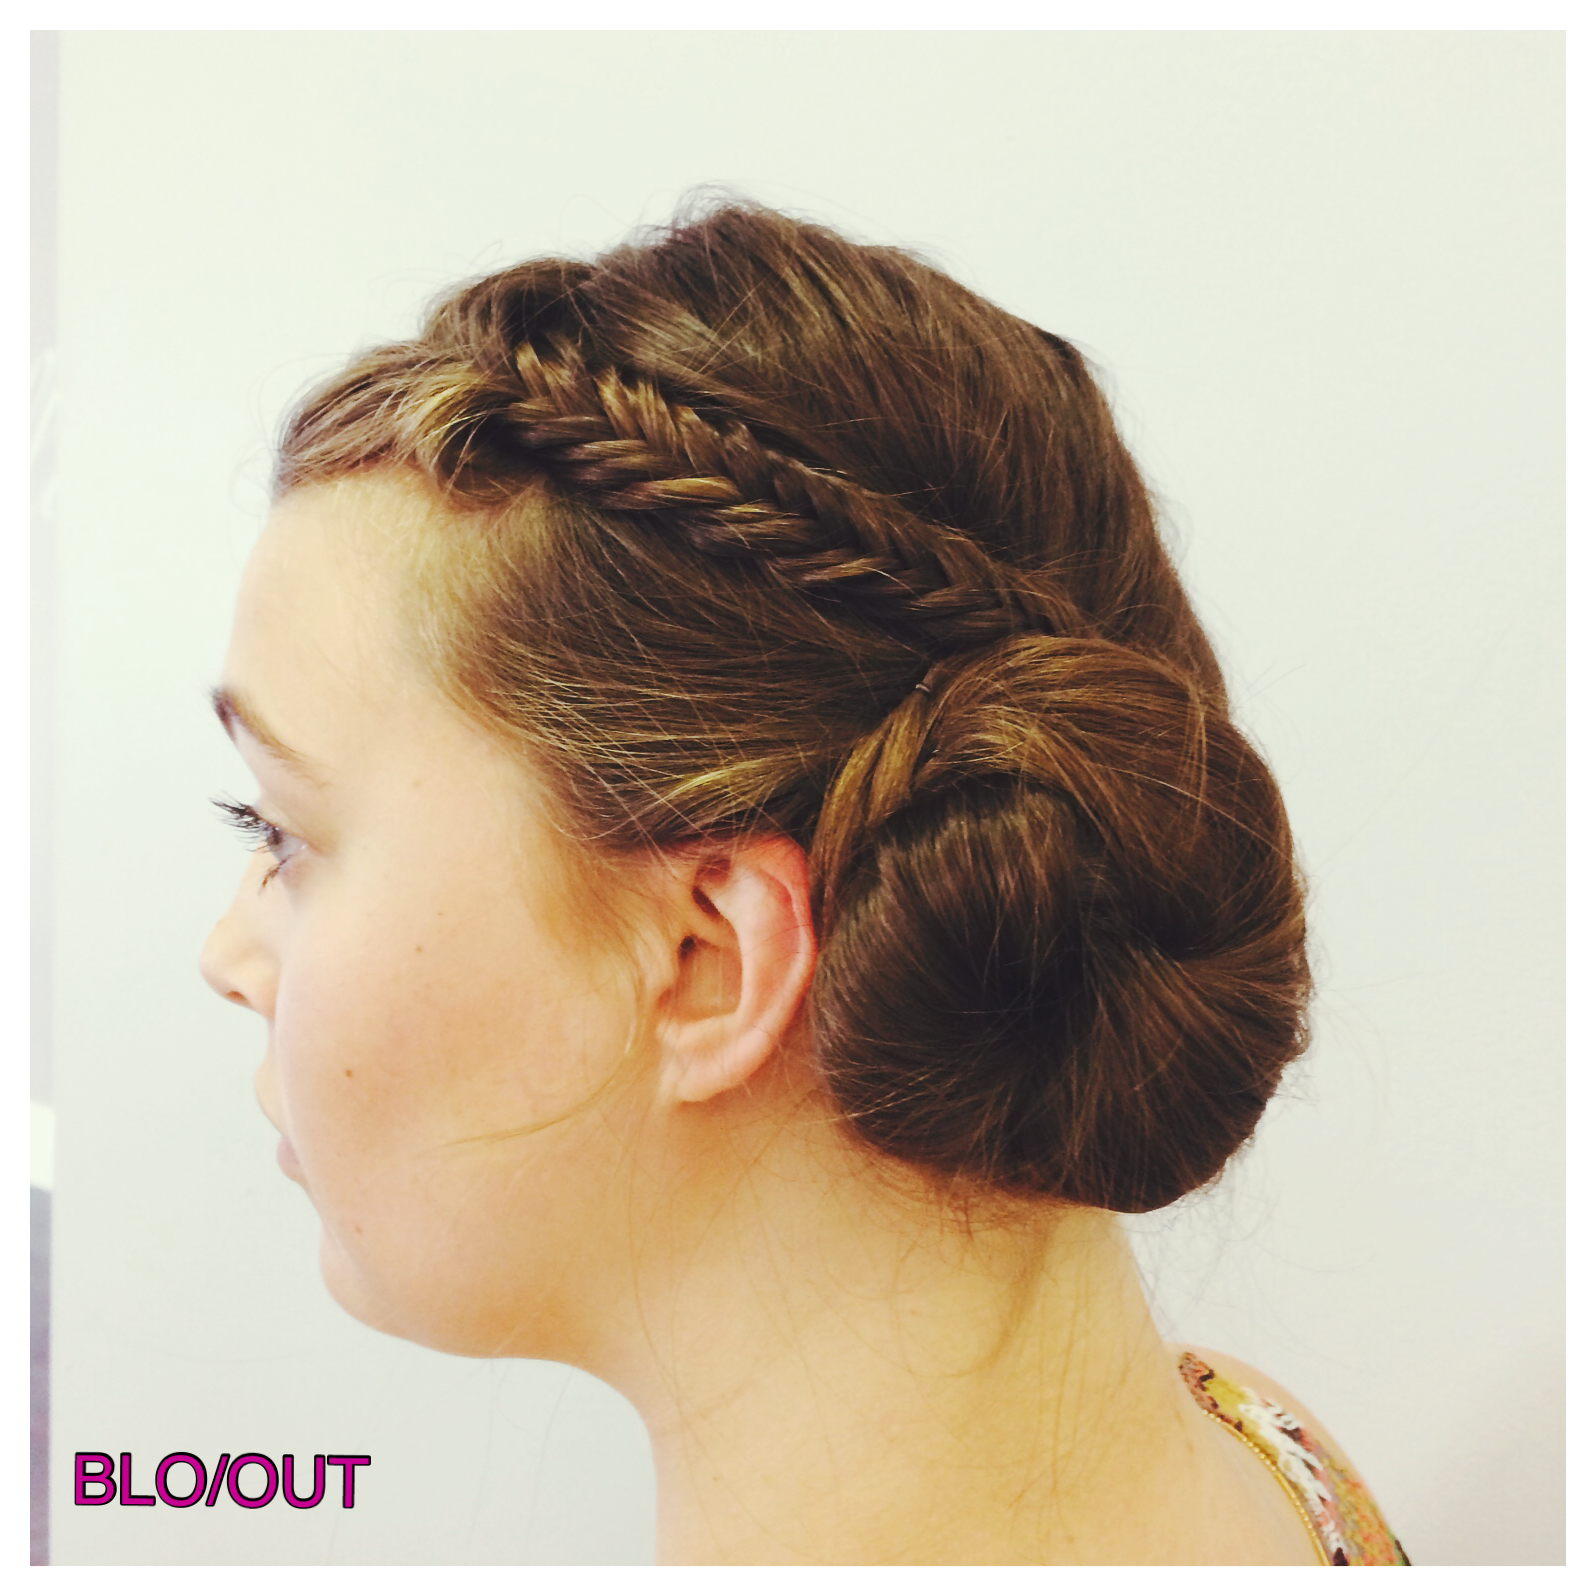 Ask A Philadelphia Stylist: Three Easy Braided Hairstyles